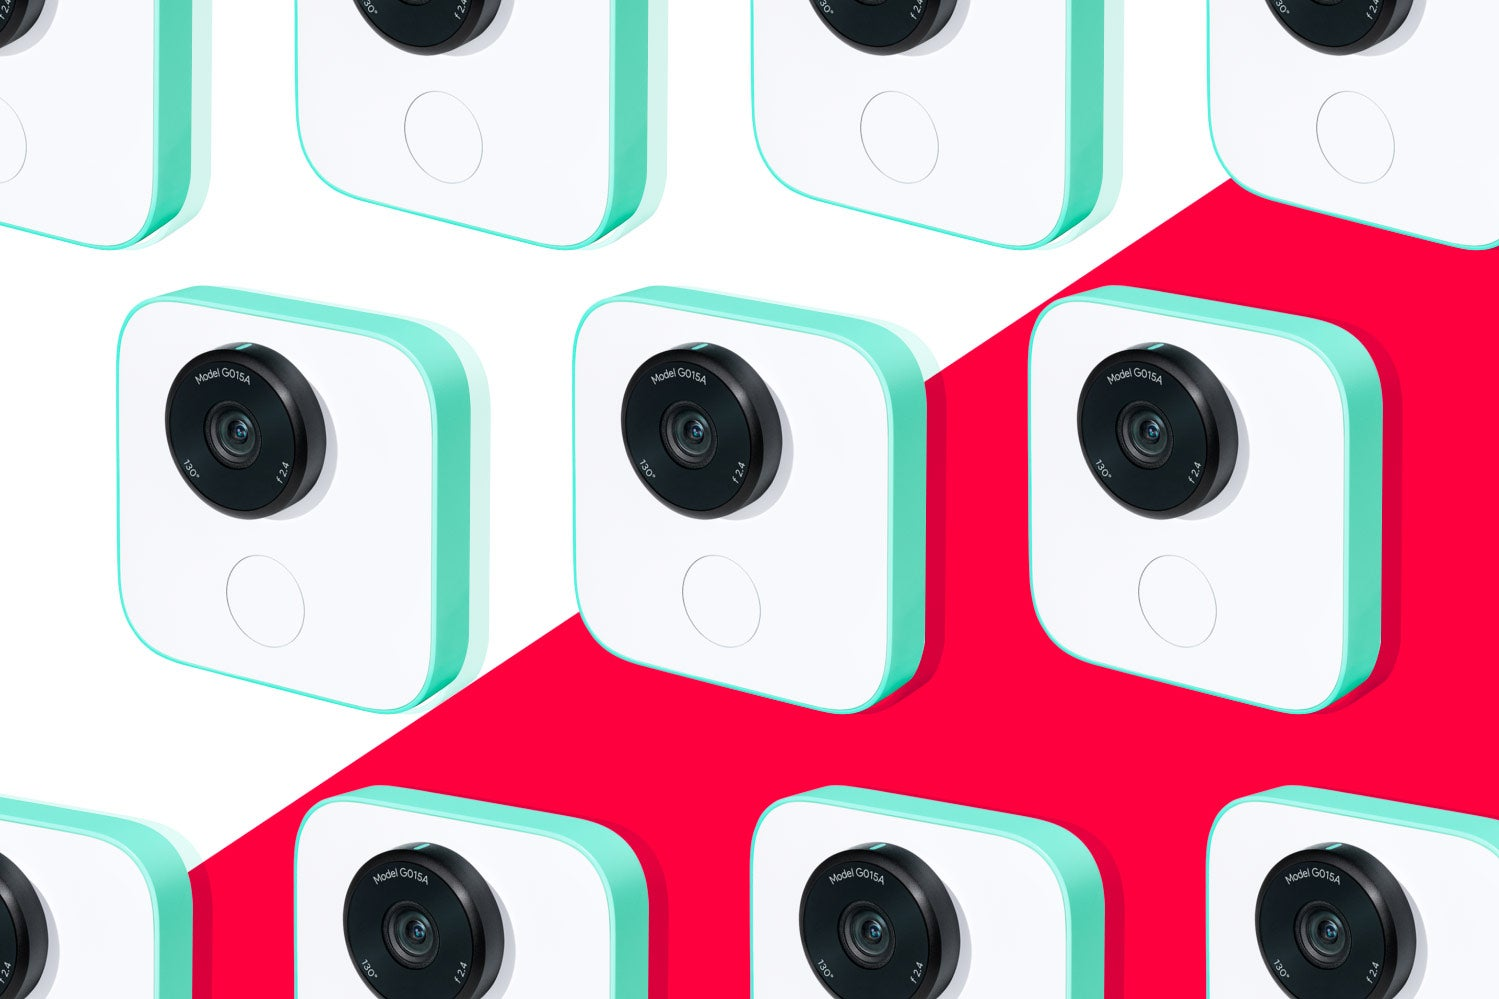 Photo illustration: cascading images of Google Clips against a red and white background.